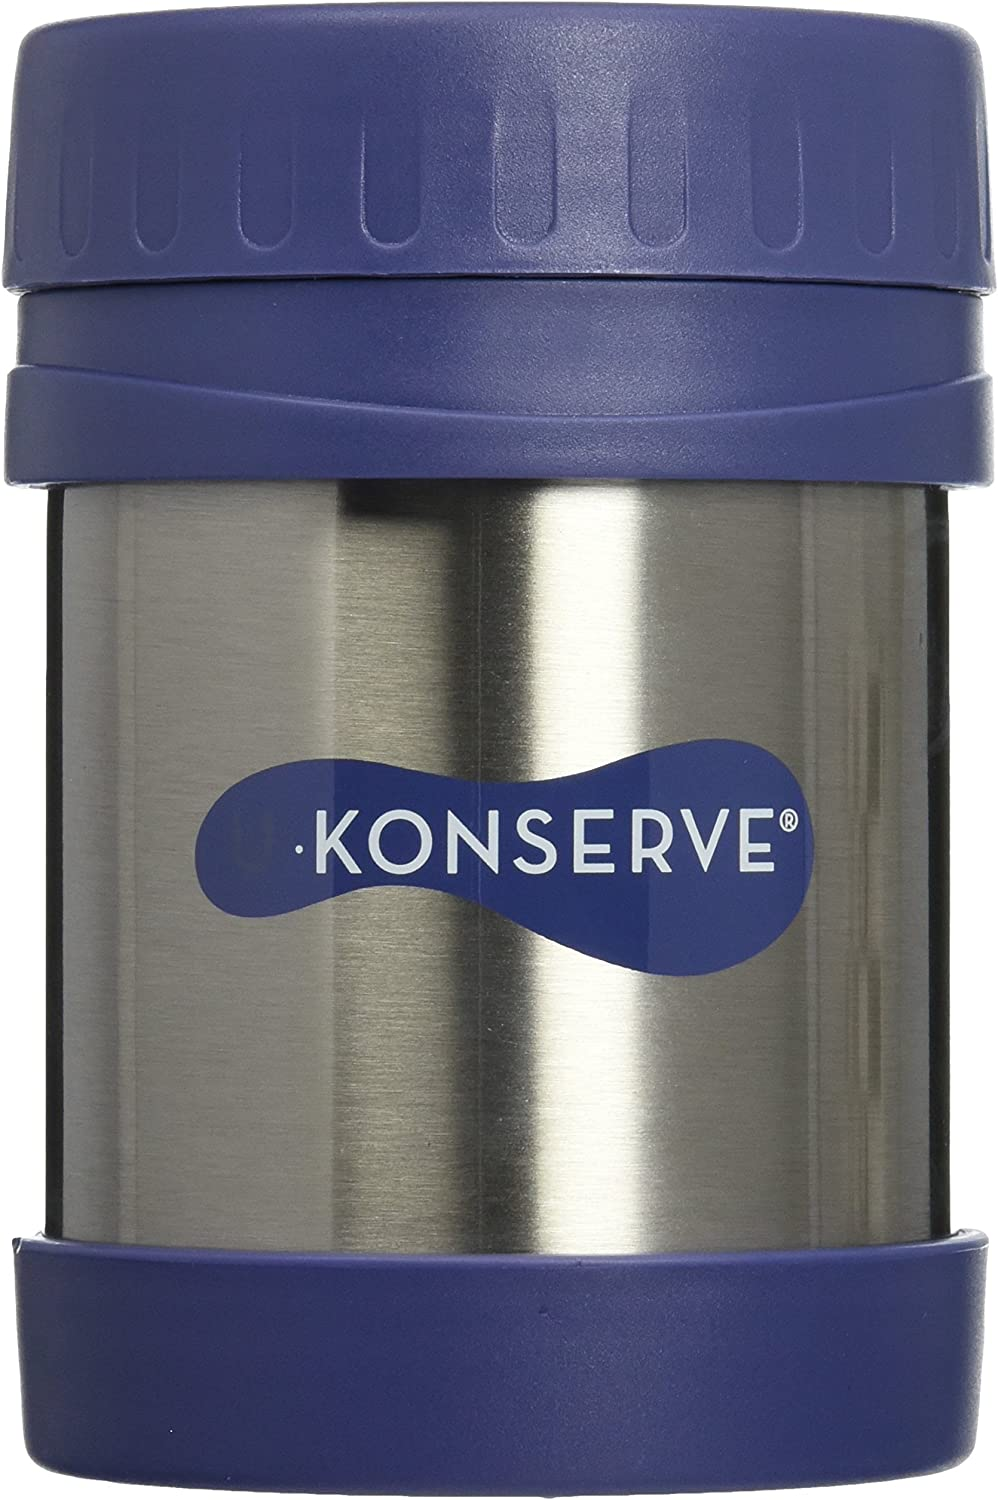 U-Konserve Insulated Food Jar Stainless Steel Container 12oz - Ocean